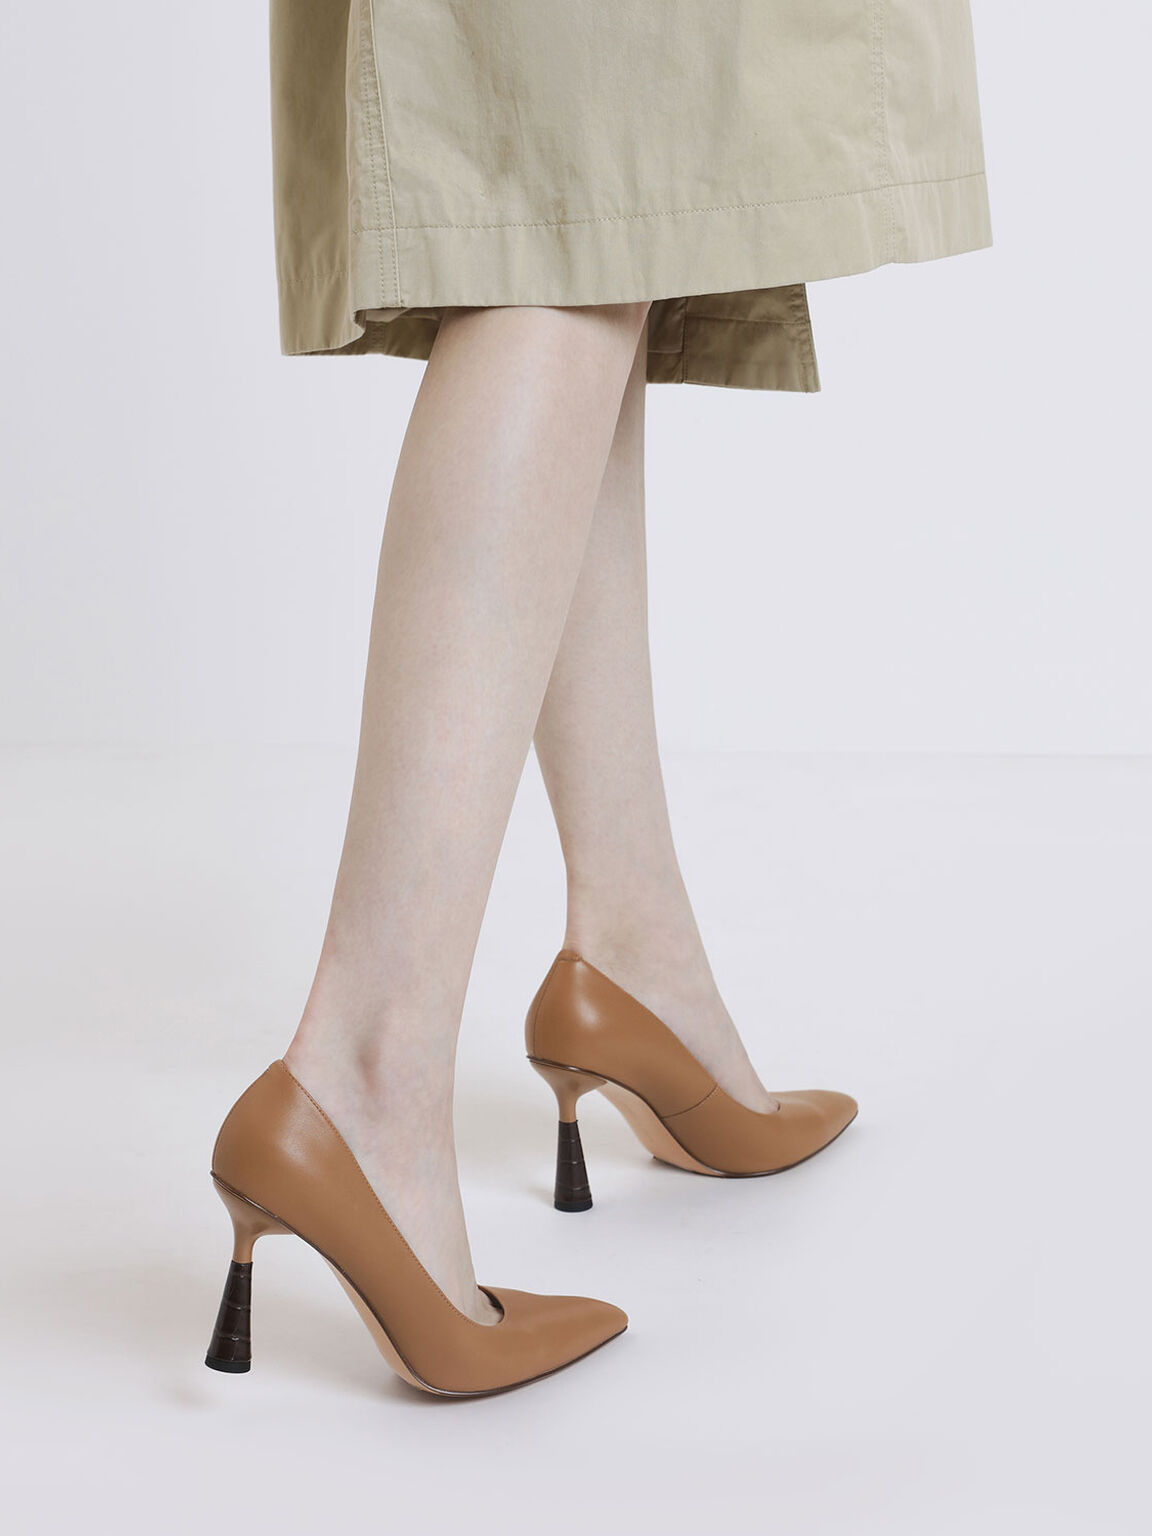 Sculptural Heel Pointed Toe Pumps, Beige, hi-res